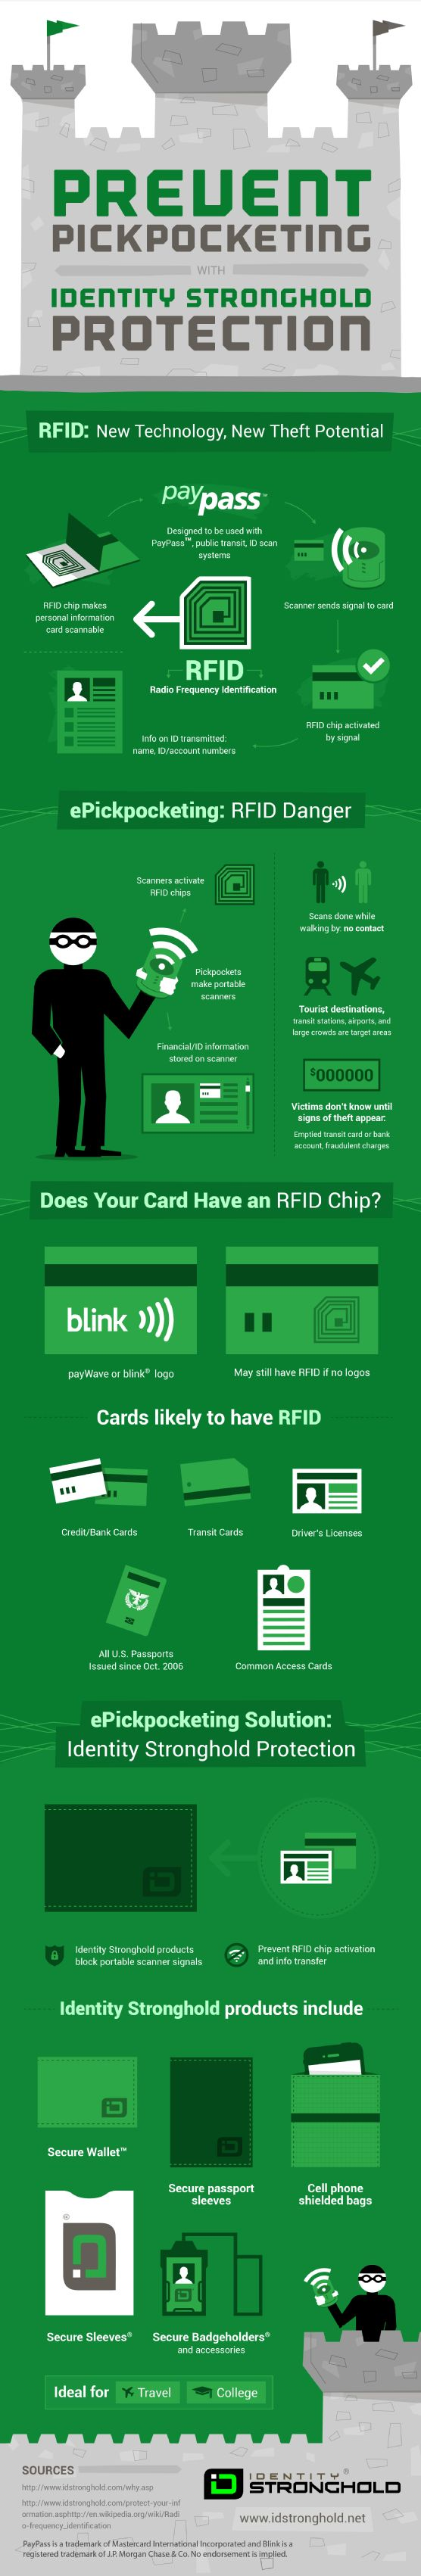 How can you tell if one of your cards has a radio frequency identification (RFID) chip? Cards that likely utilize RFID technology include credit cards, transit cards, and driver's licenses. Find out how Identity Stronghold wallets can help keep this personal information safe from e-pickpocketing by reading this infographic.